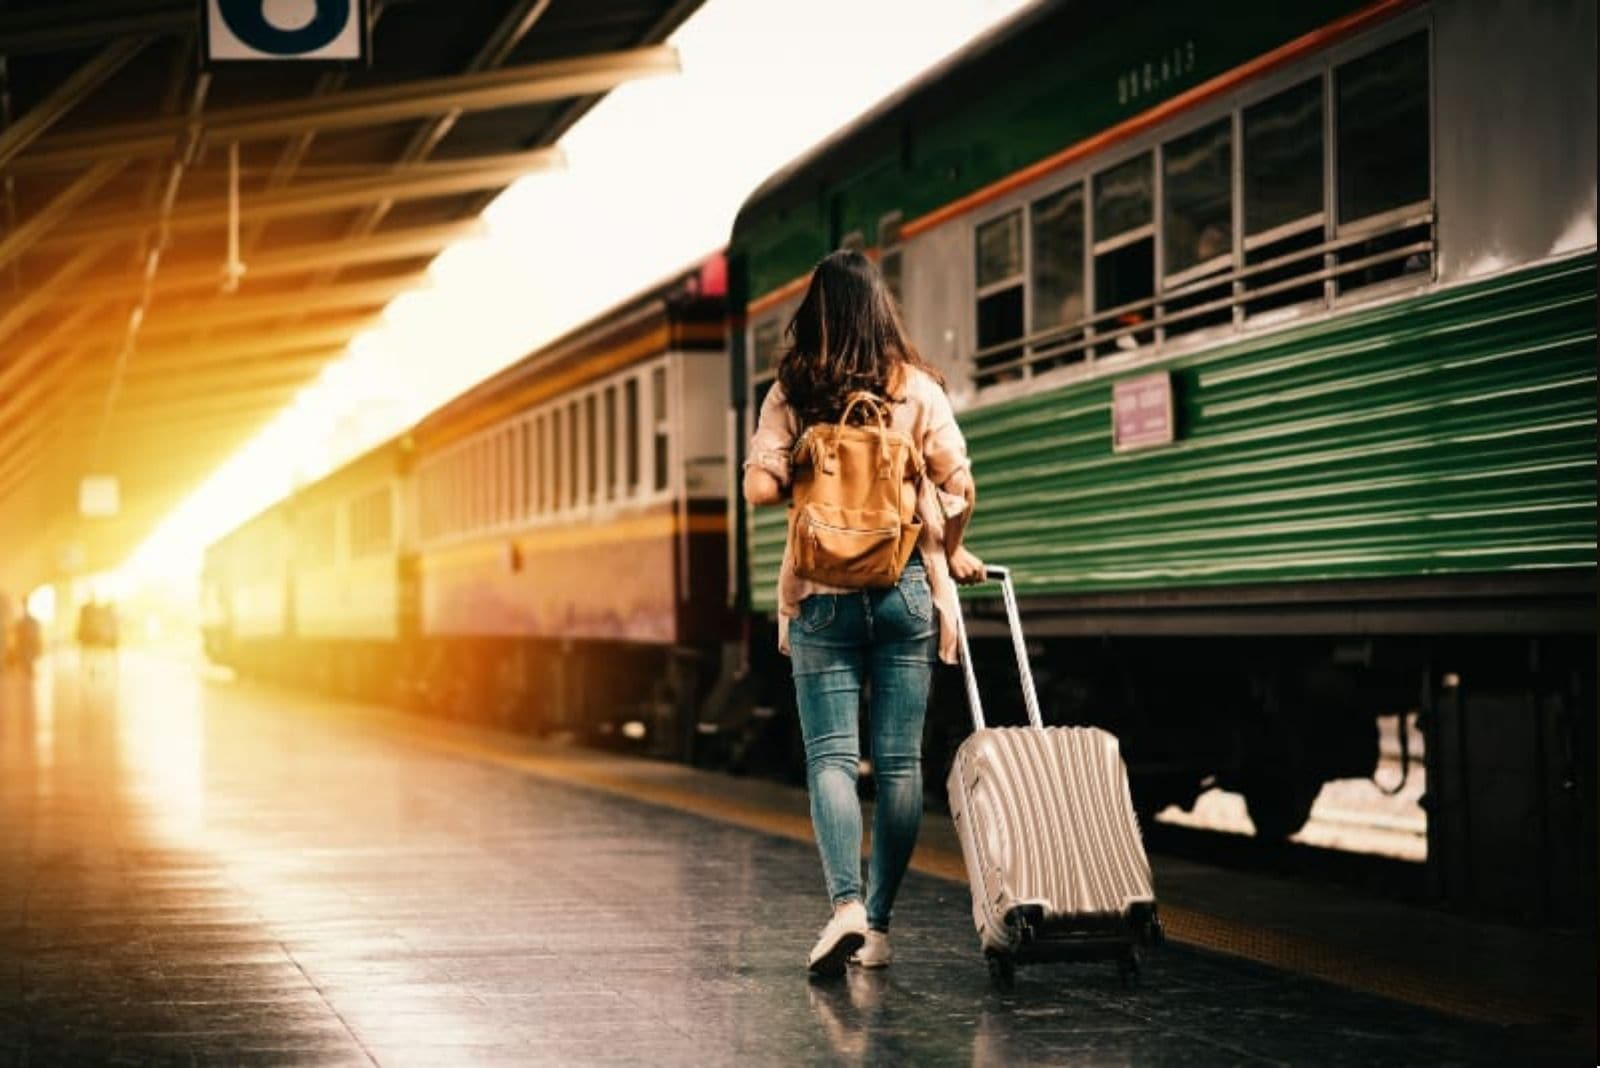 woman with her baggage going in the train - sunset